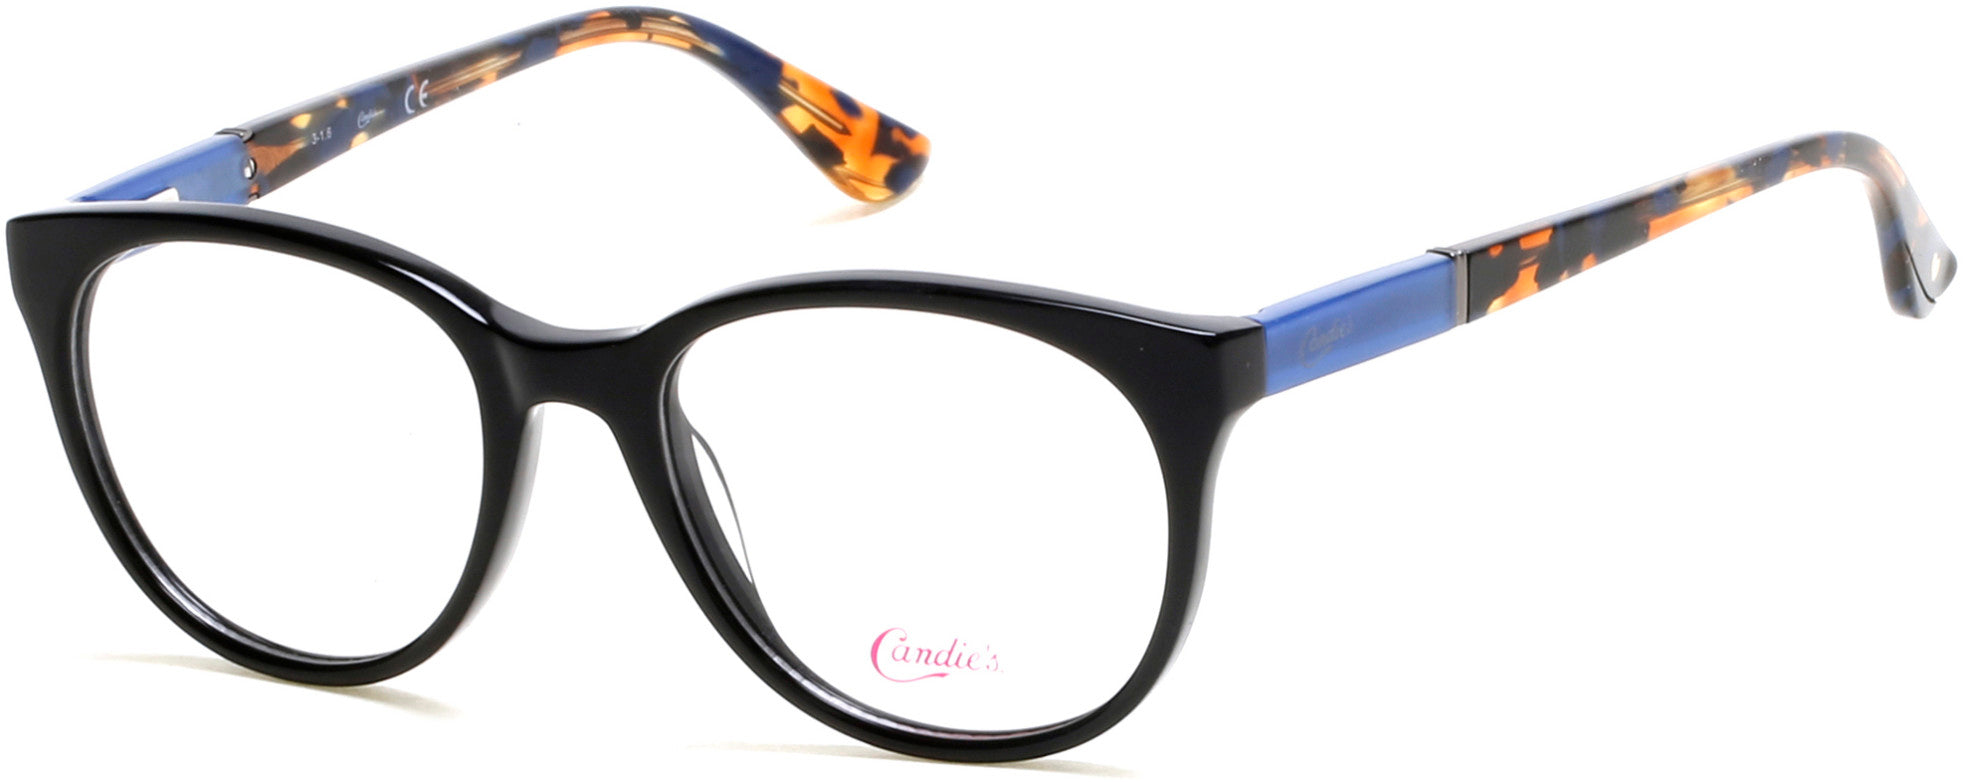 Candies CA0138 Geometric Eyeglasses 005-005 - Black/other